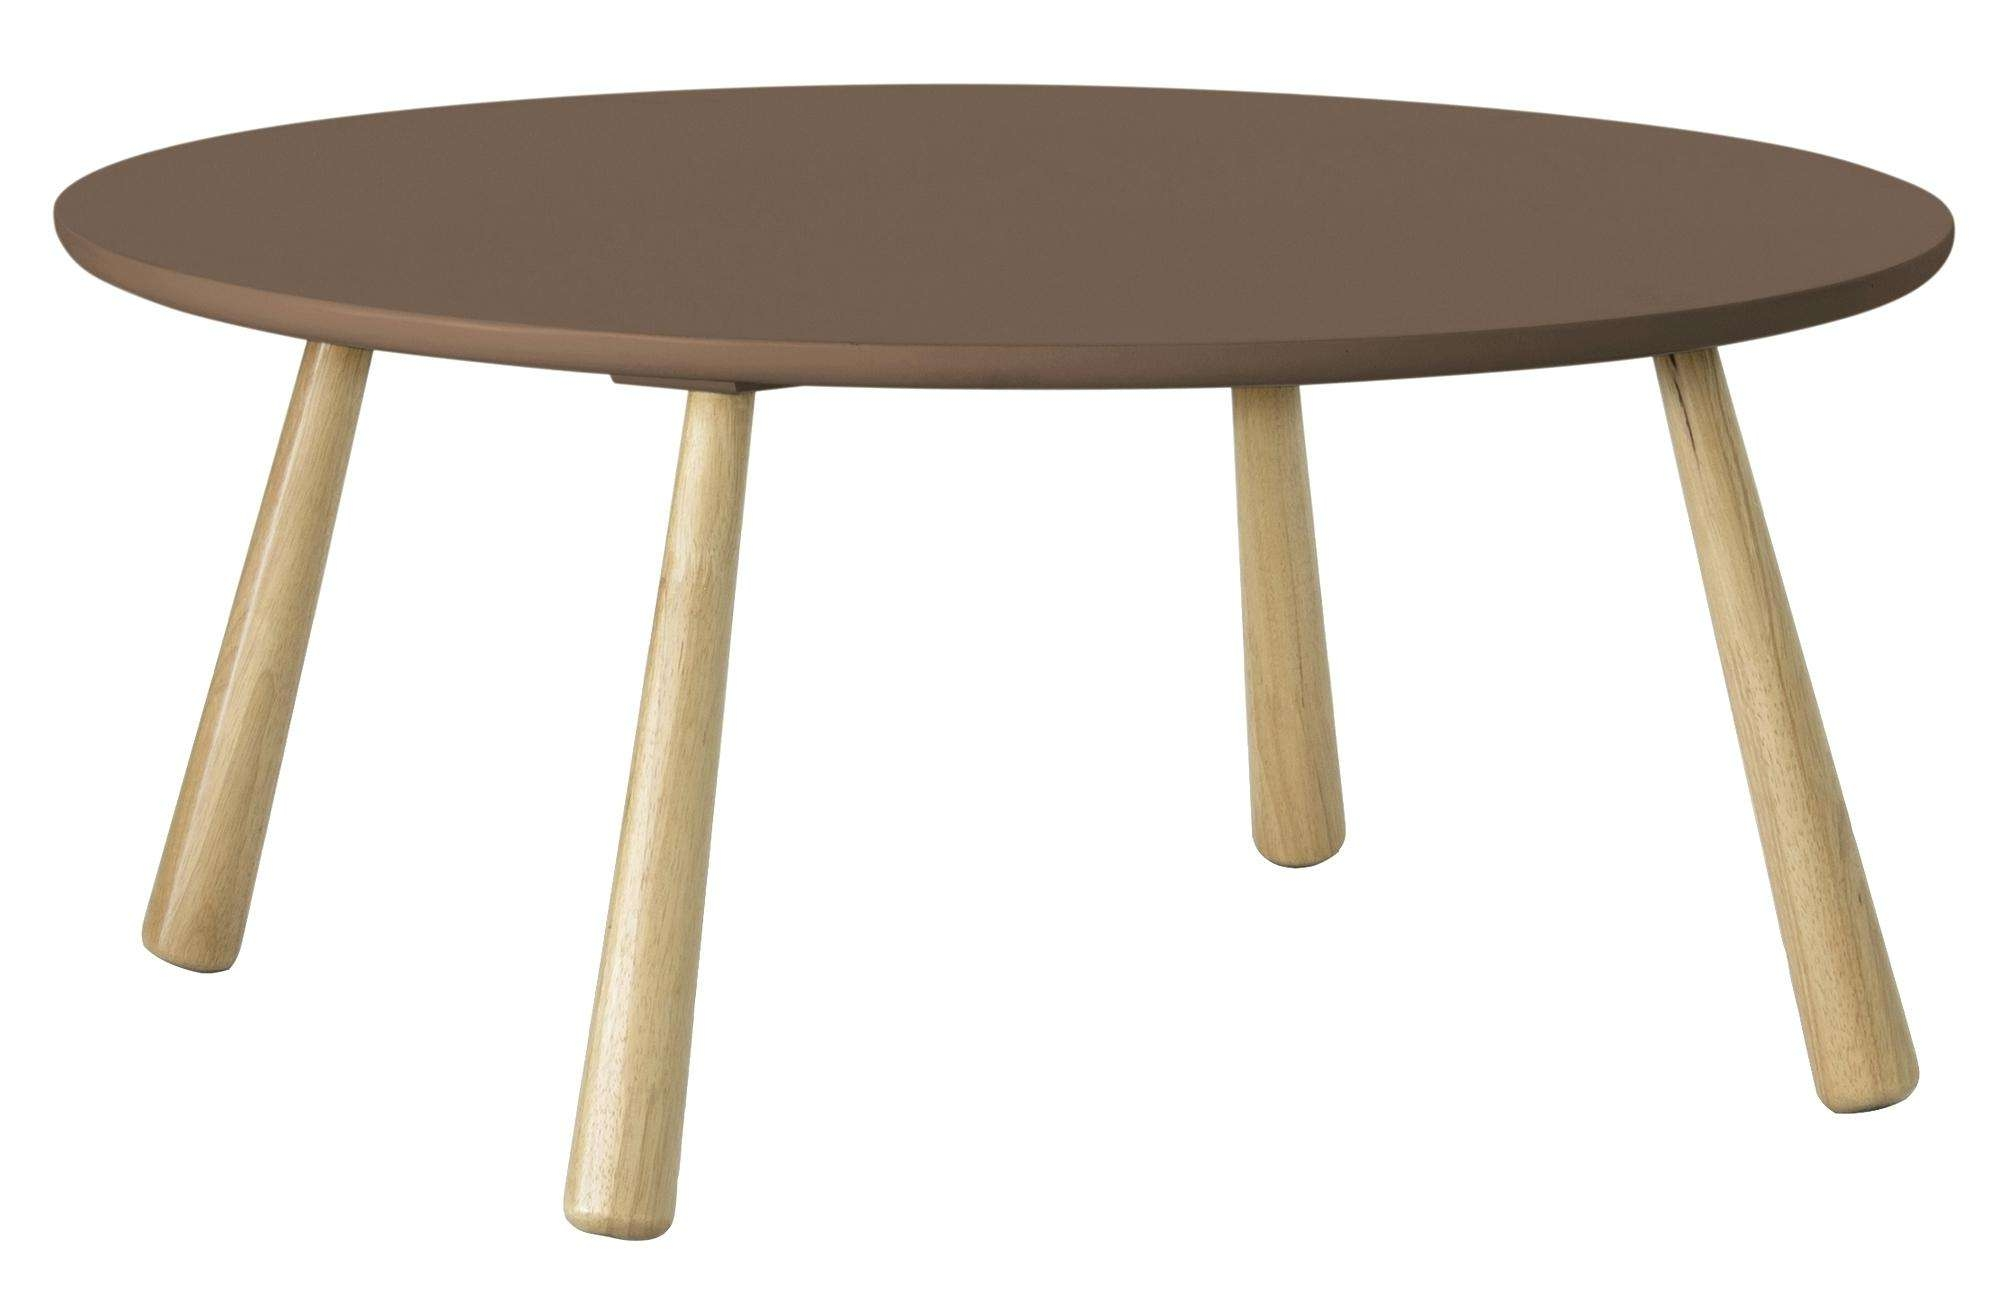 Round Retro Coffee Table Diamond Dining With Solid Oak Legs Within Latest Retro Oak Coffee Tables (View 20 of 20)